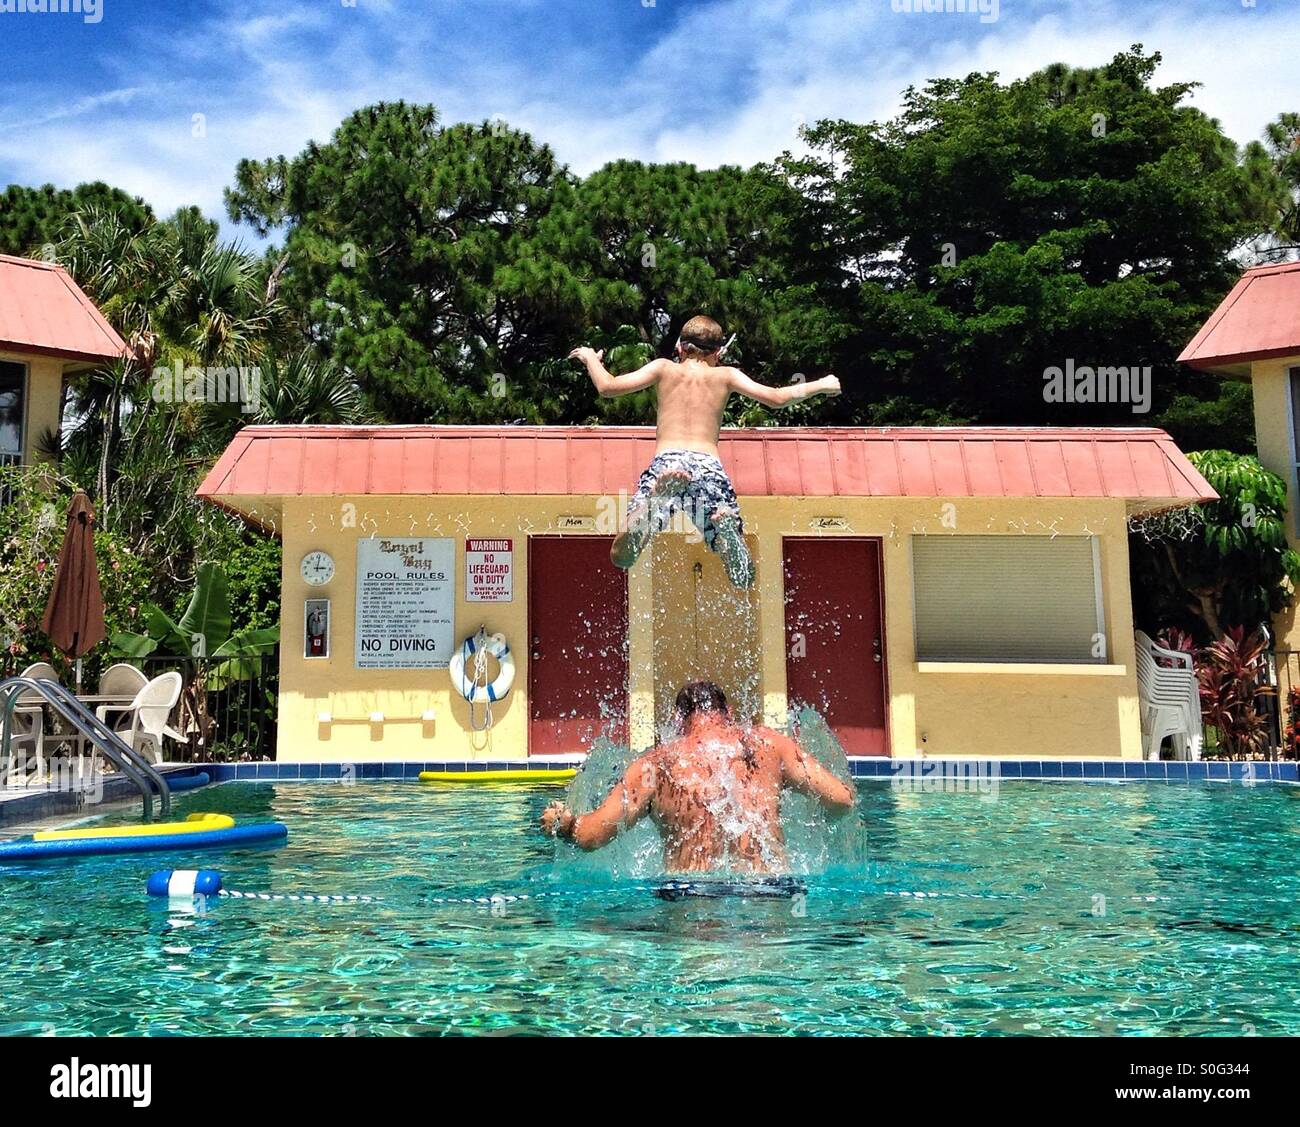 Child jumping off father's shoulders into a pool in Naples Florida - Stock Image